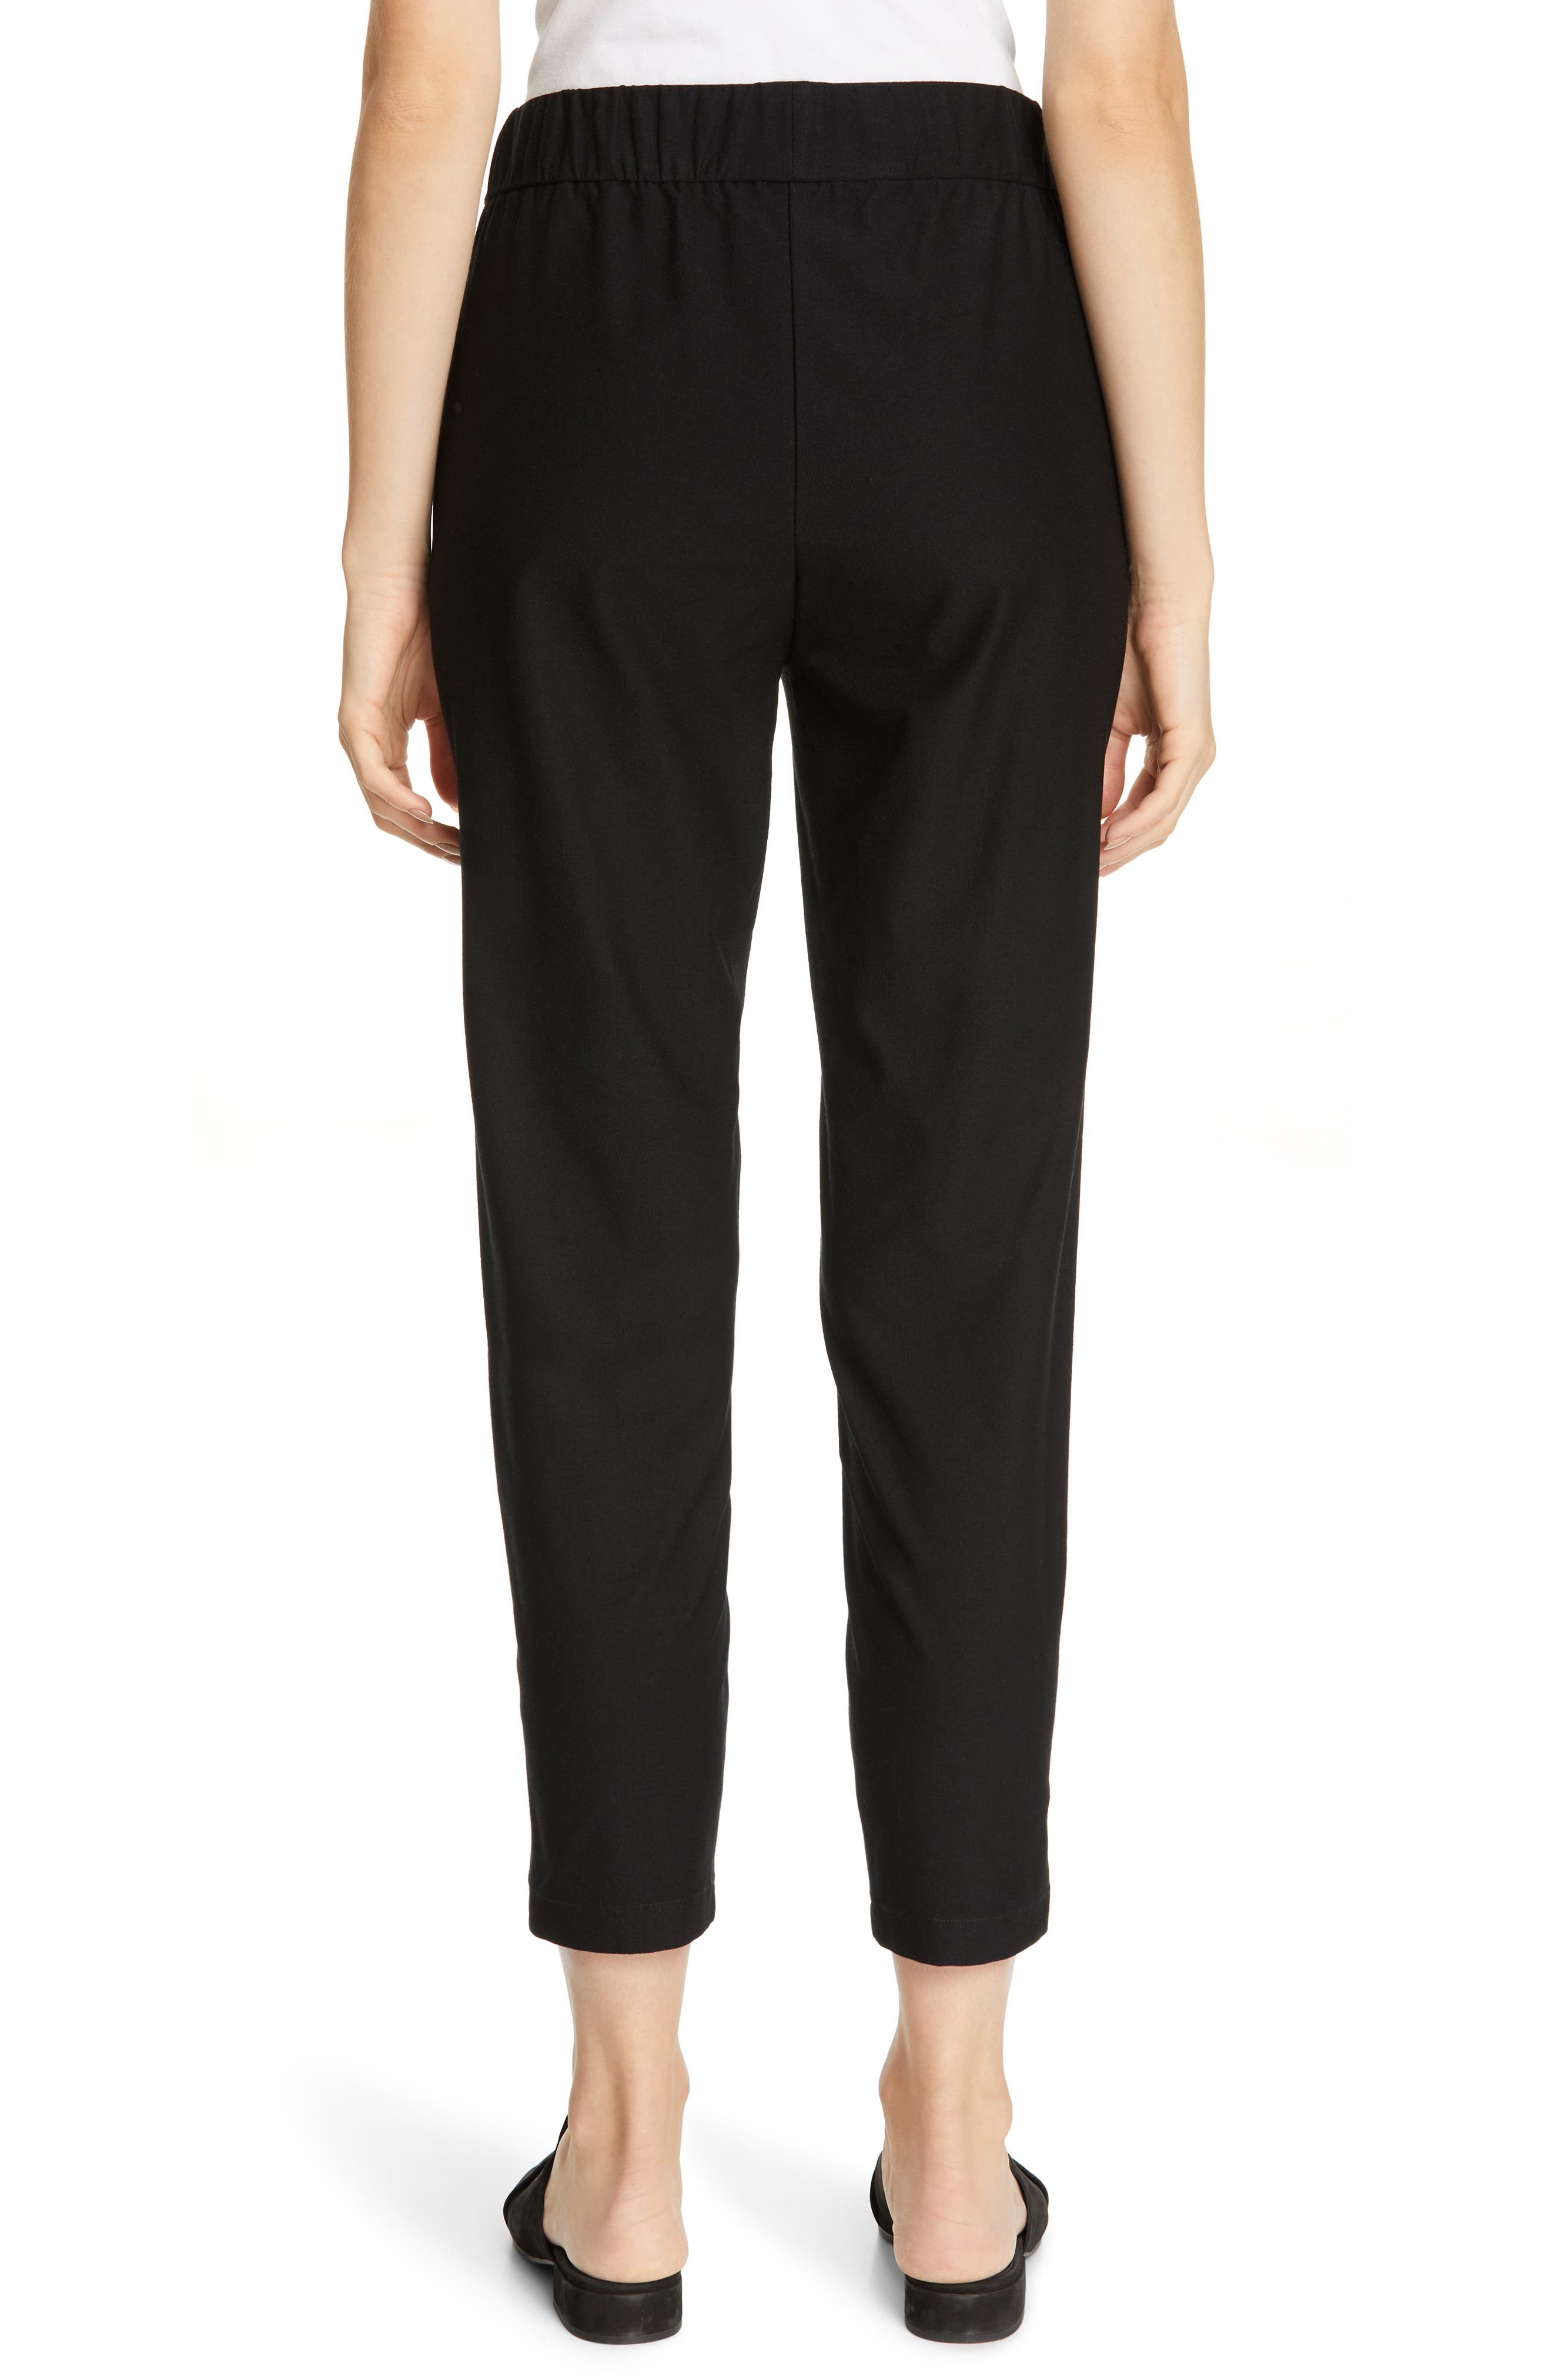 Eileen Fisher Pants Tapered Ankle Pants